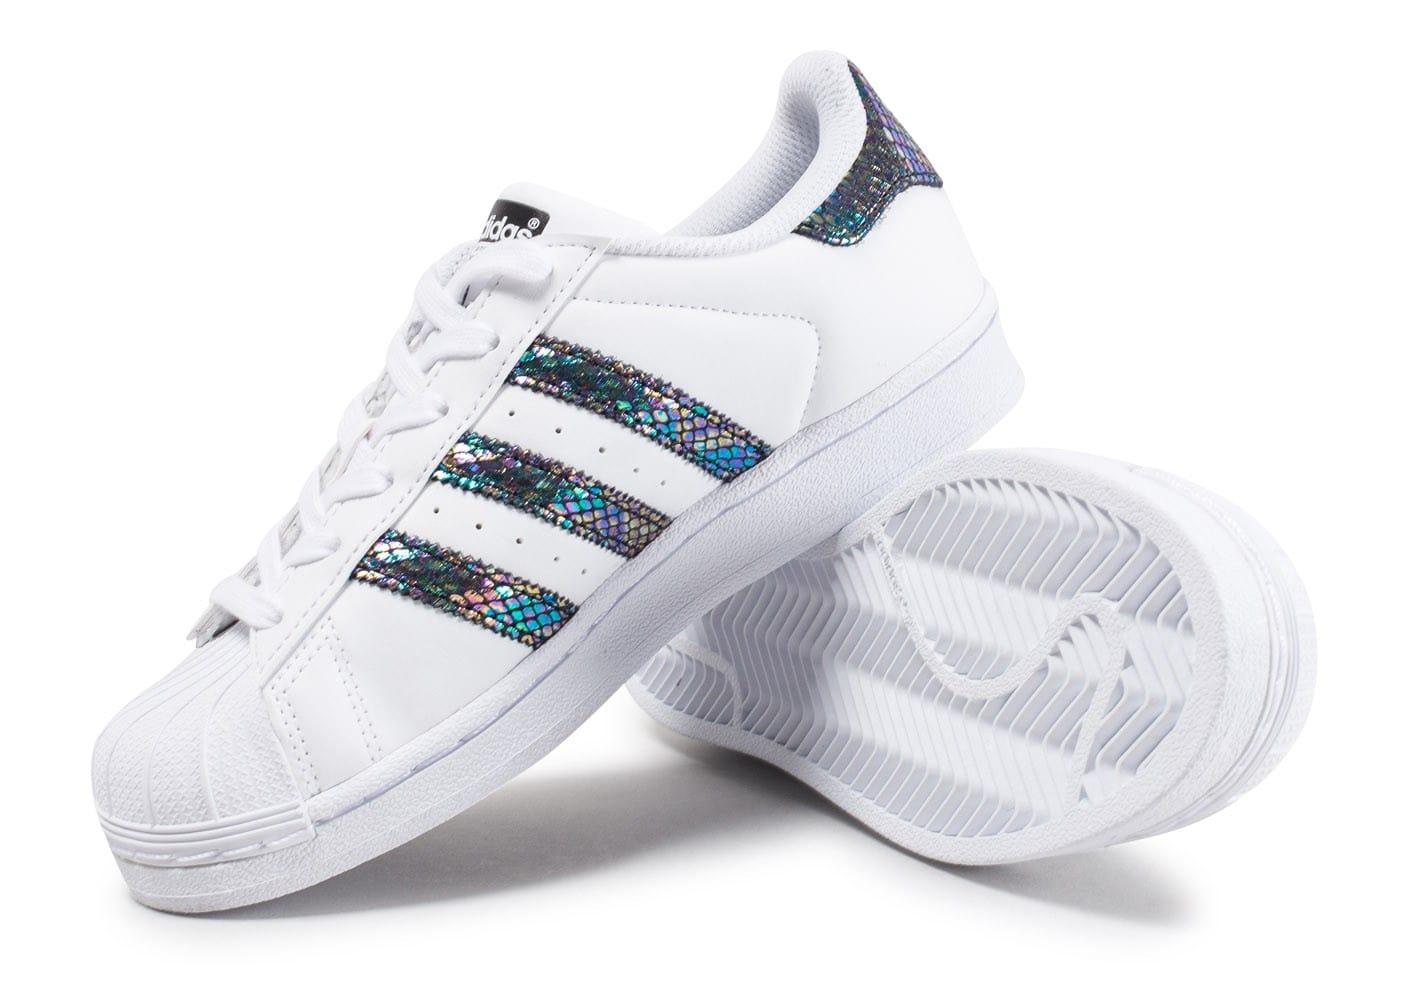 ... Chaussures adidas Superstar Metallic Snake Junior vue avant ...